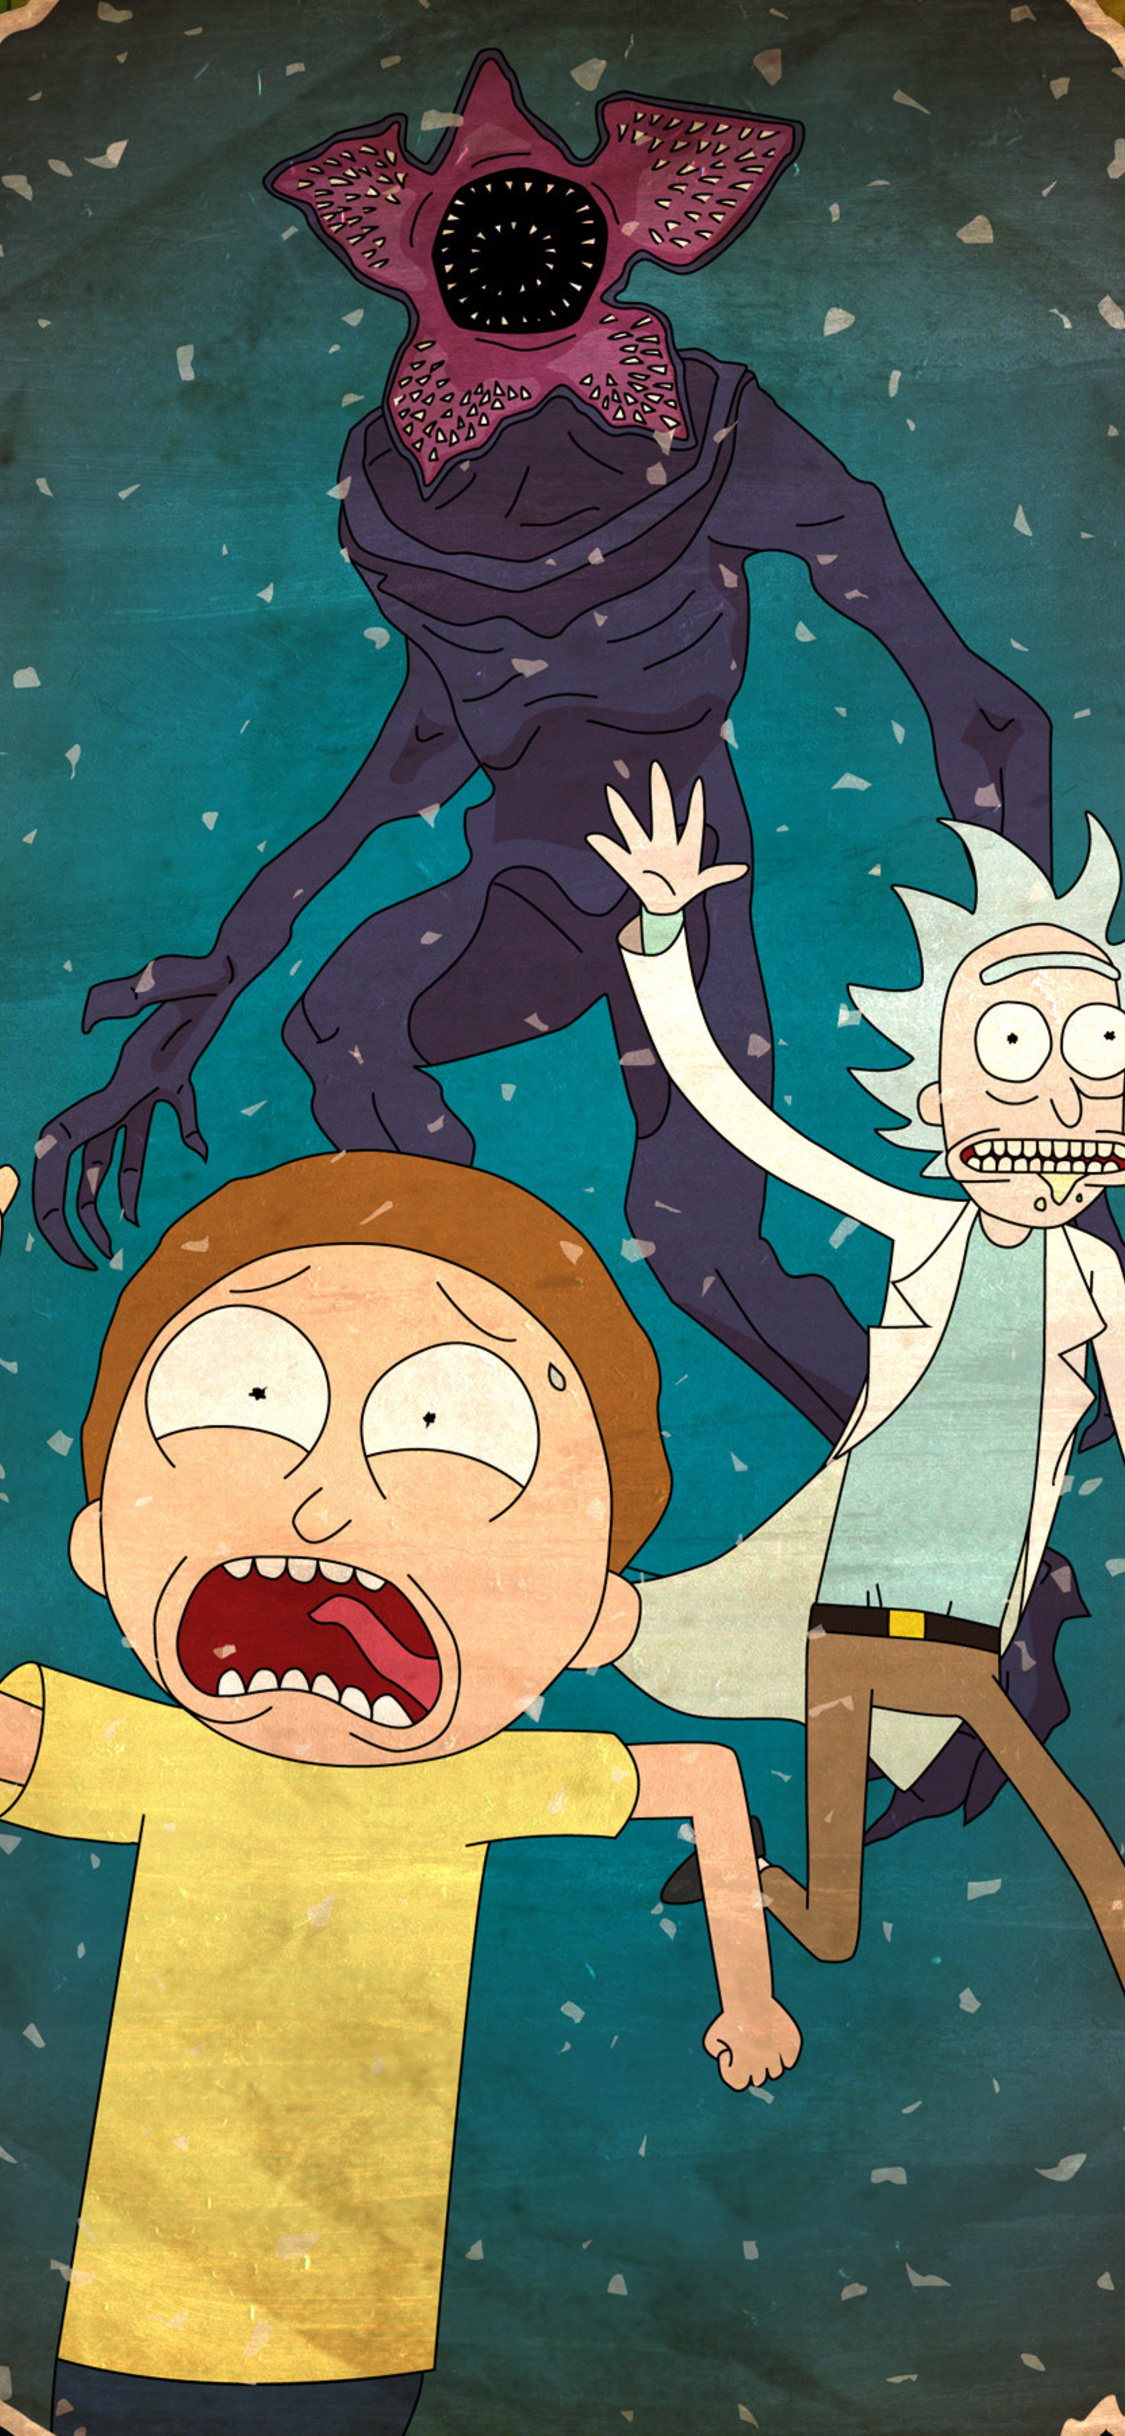 1125x2436 Rick And Morty 4k Iphone XS,Iphone 10,Iphone X ...